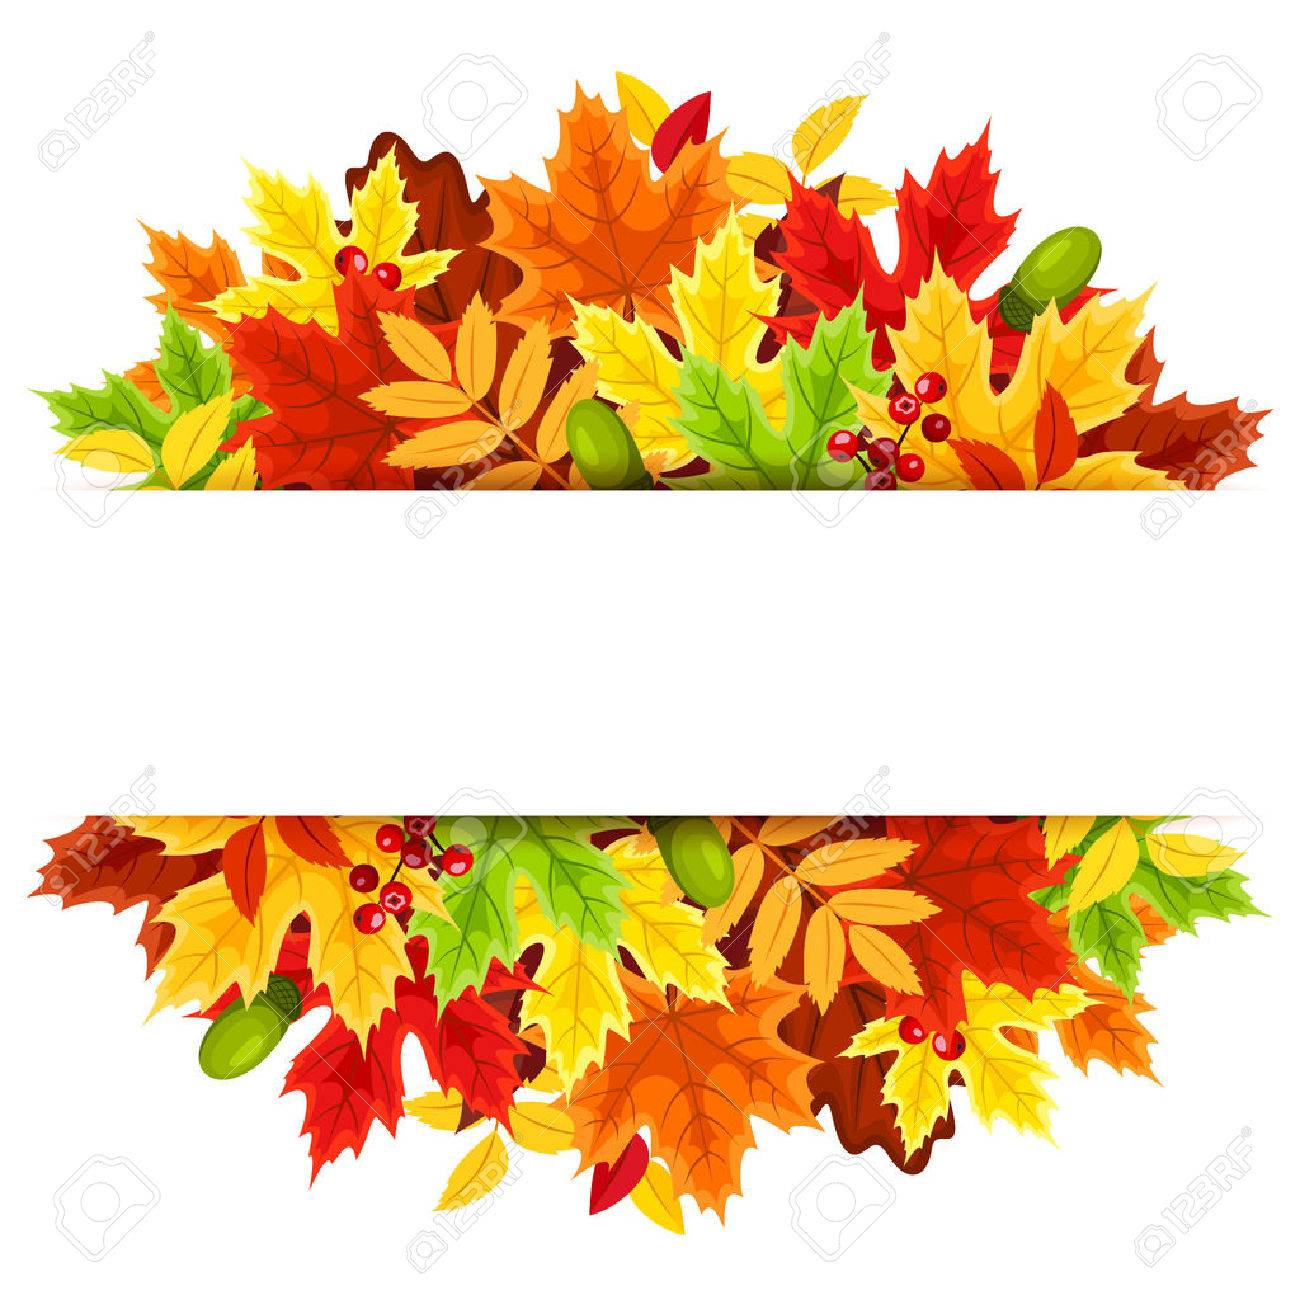 Background With Colorful Autumn Leaves Royalty Free Cliparts Vectors And Stock Illustration Image 32522344